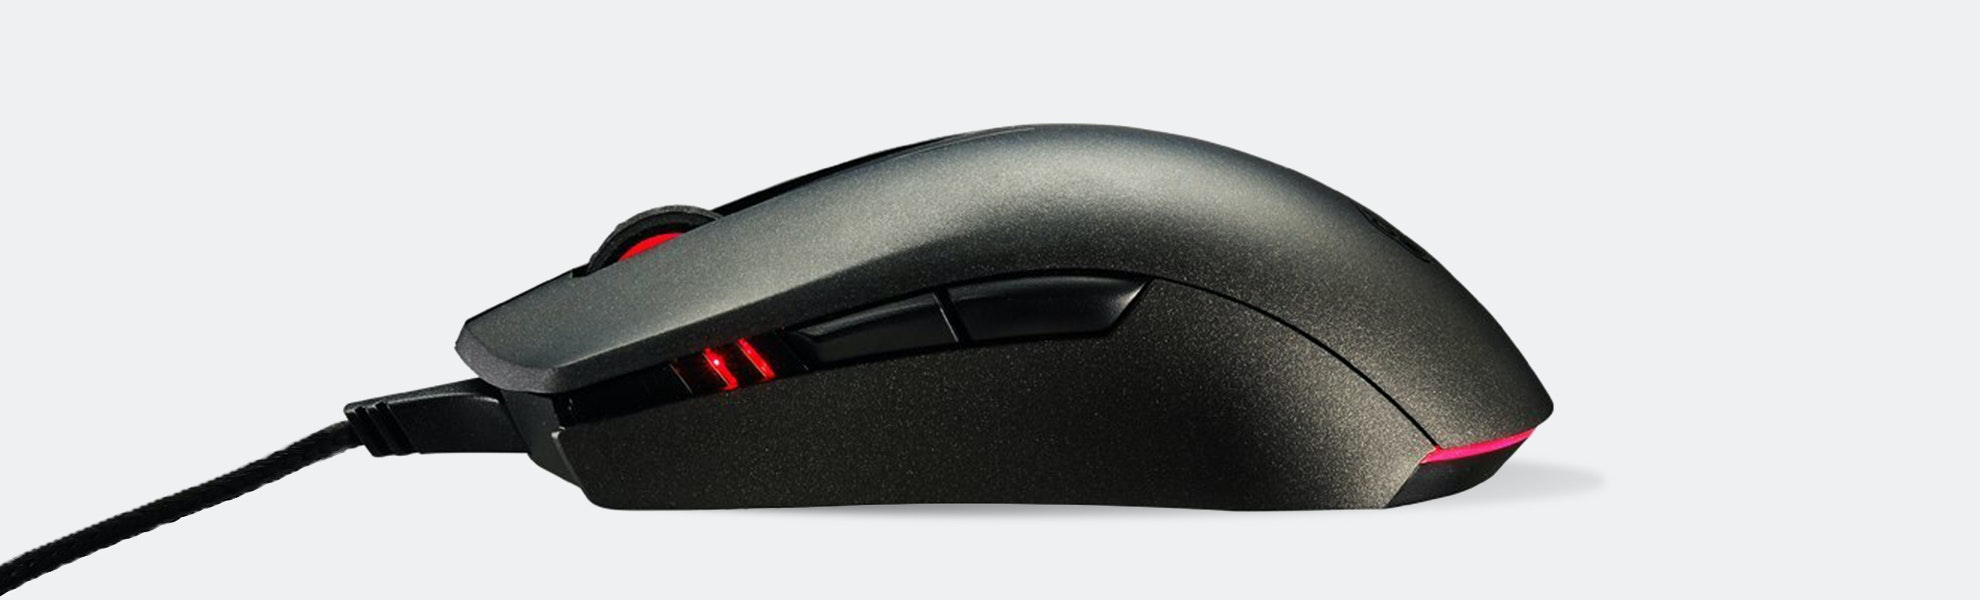 Cooler Master MasterMouse Pro L